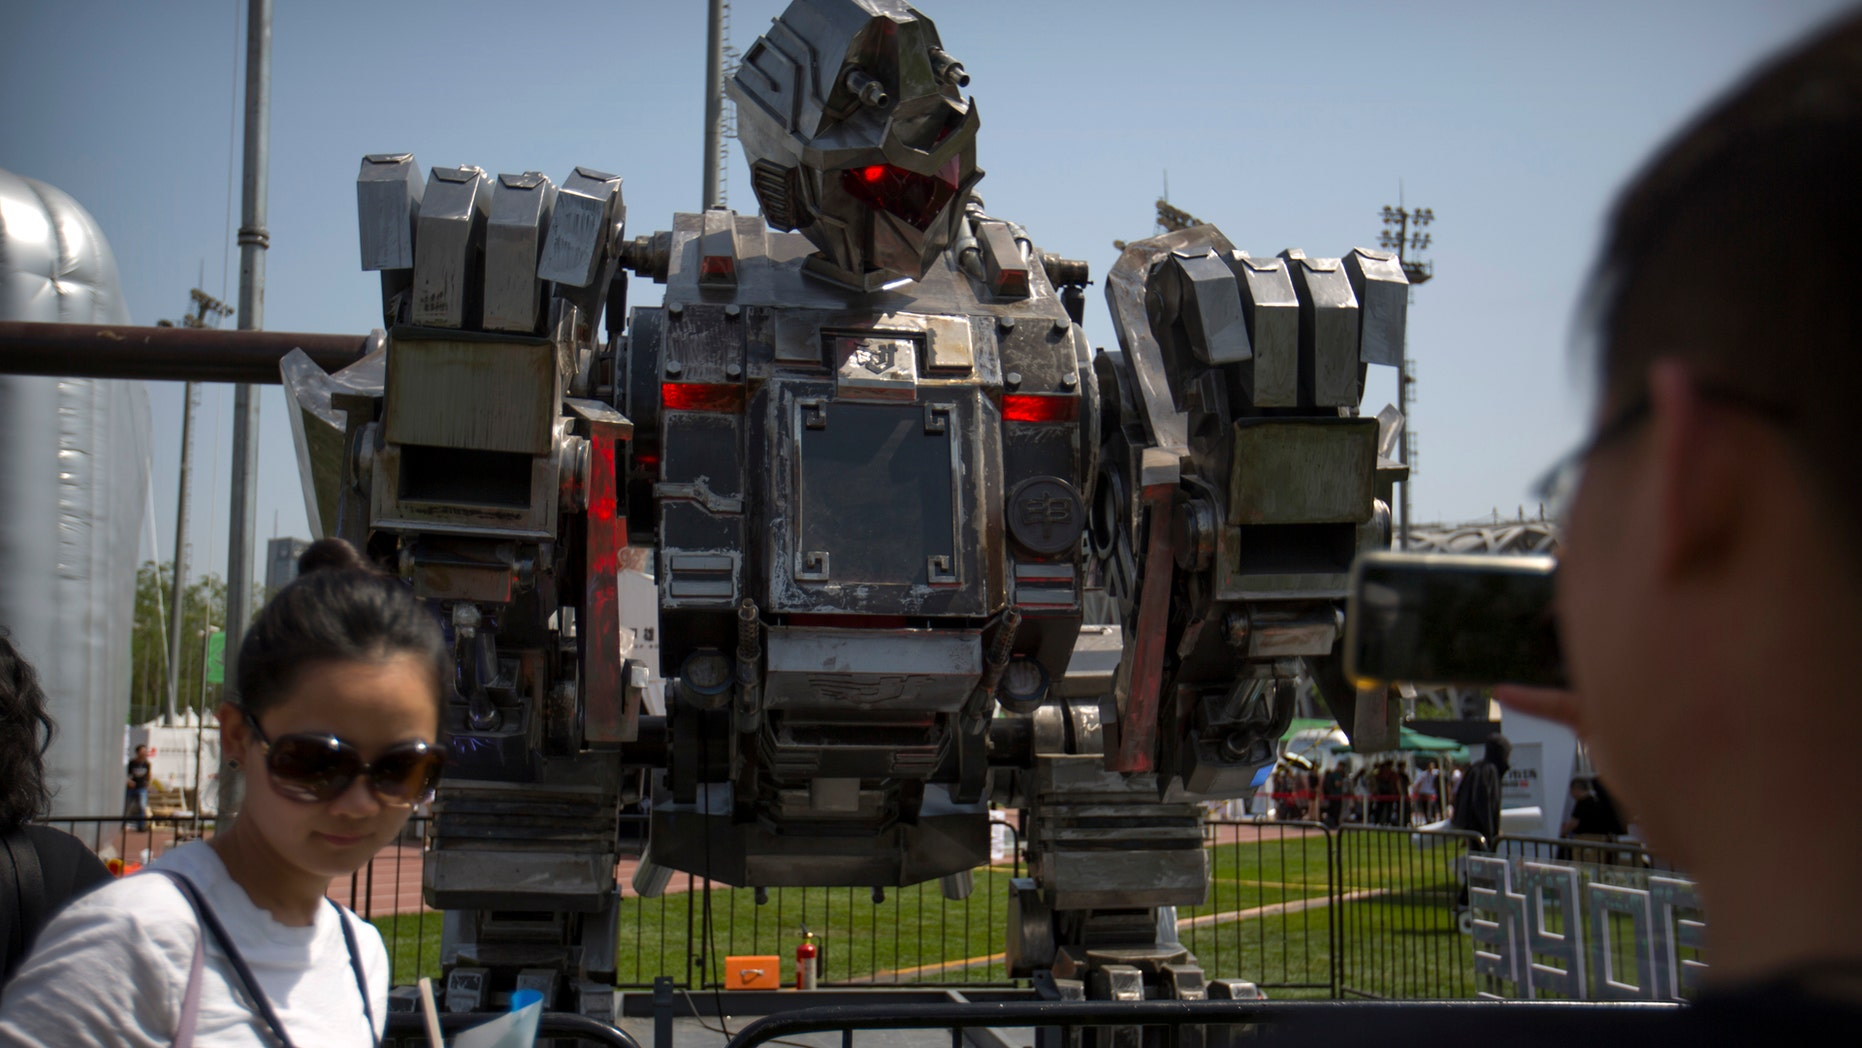 Visitors look at a giant robot named The Monkey King at the G Festival, part of the Global Mobile Internet Conference (GMIC) in Beijing, Saturday, April 29, 2017. The GMIC features current and future trends in the mobile Internet industry by some major foreign and Chinese internet companies. (AP Photo/Mark Schiefelbein)